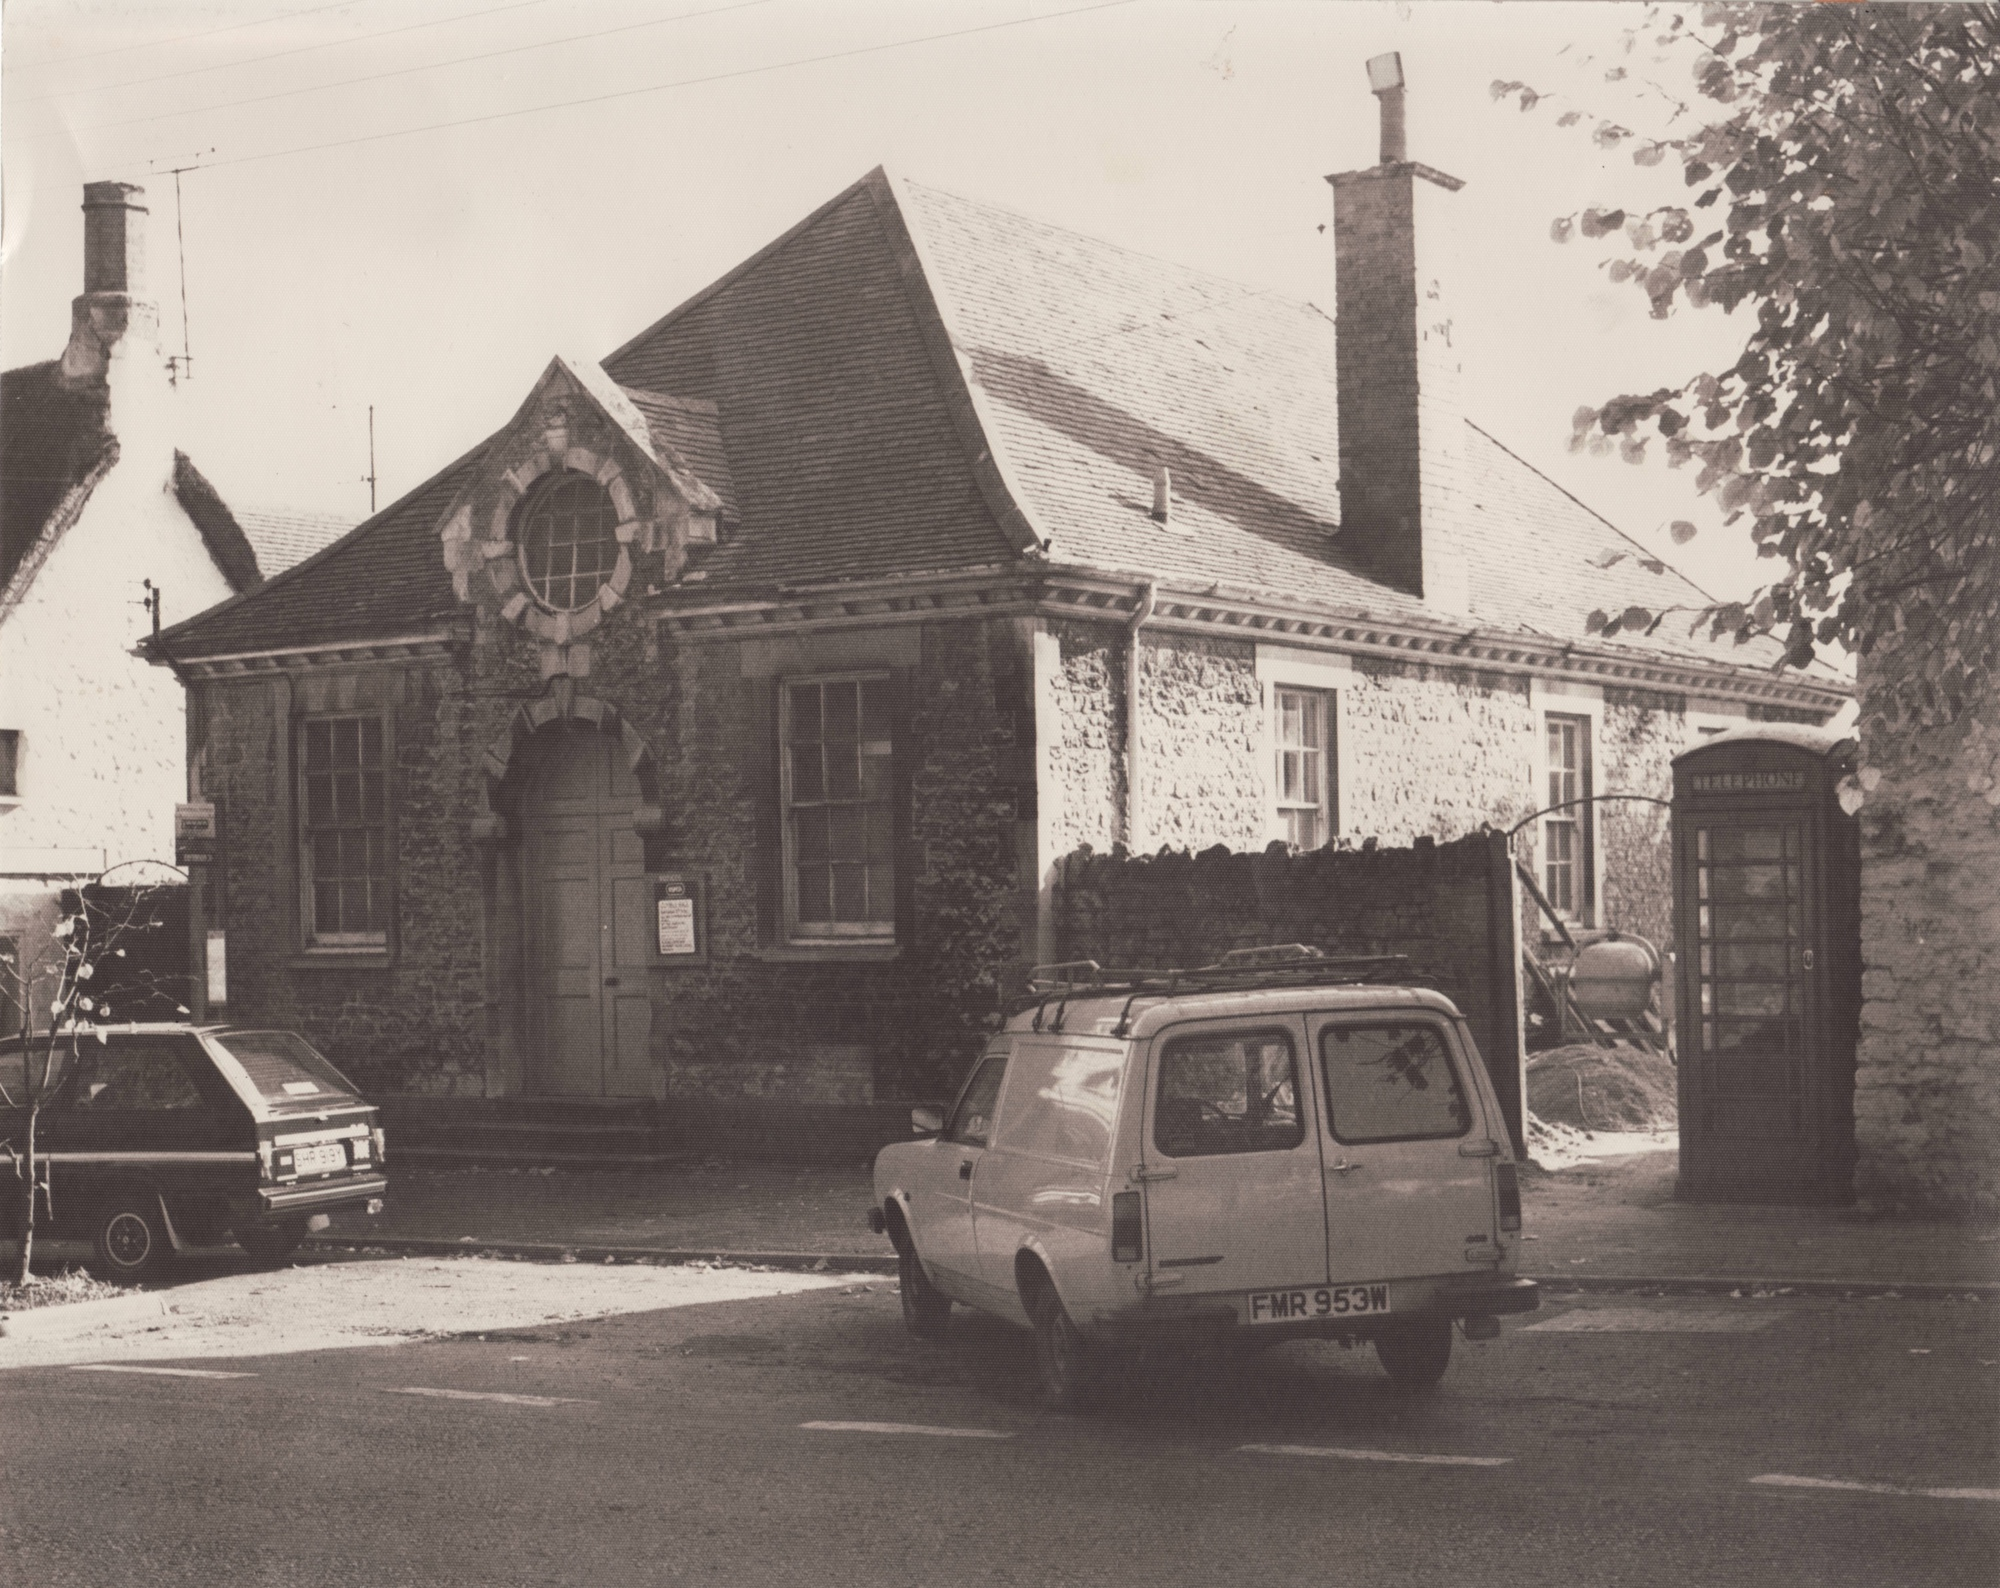 Black & White photo of the Institute probably from the 1980s